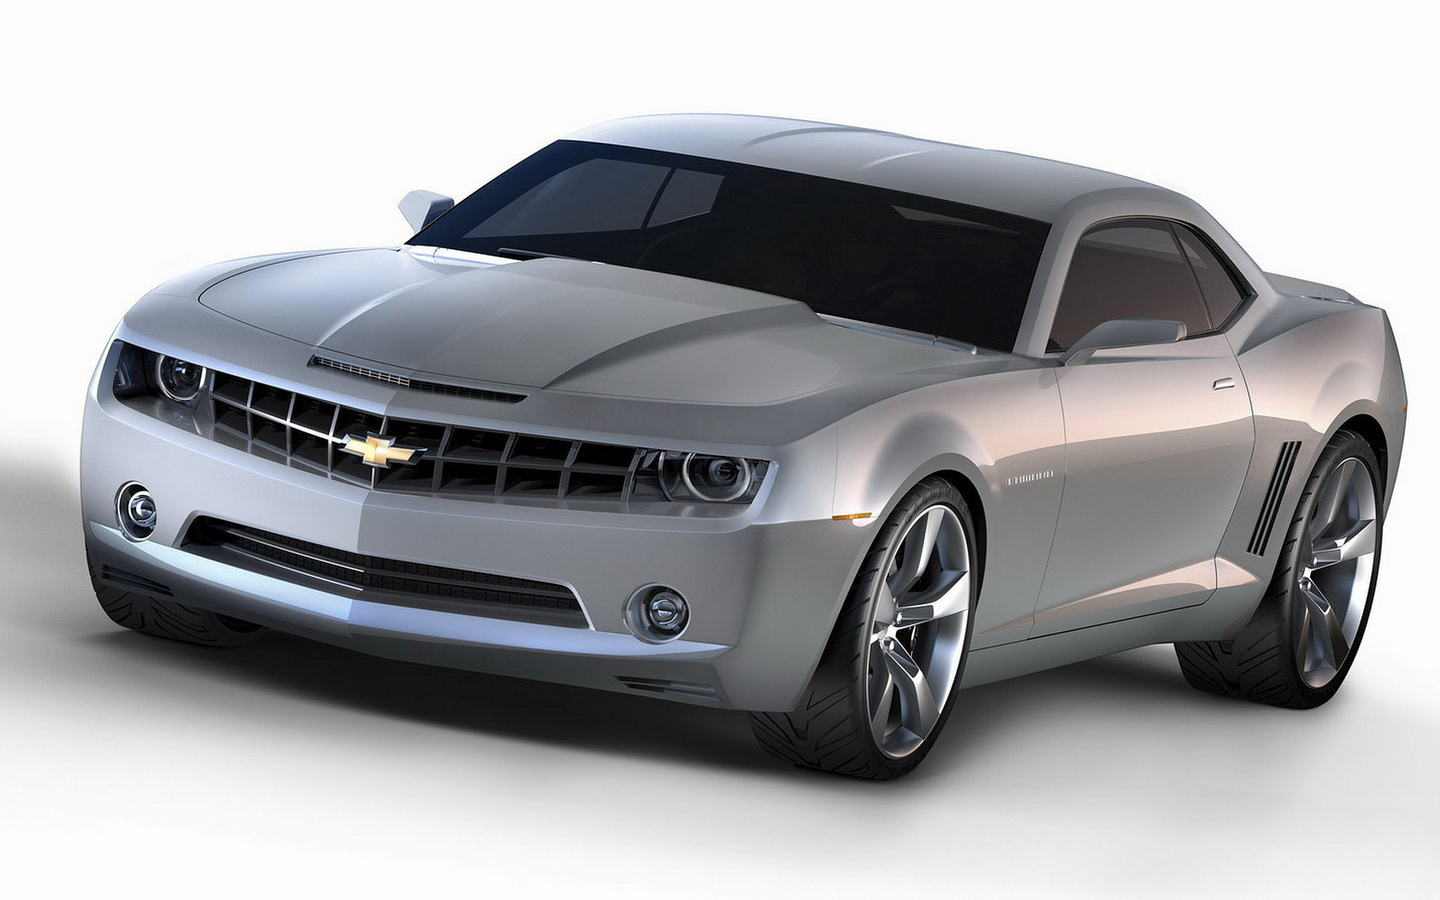 Is Camaro Considered A Sports Car